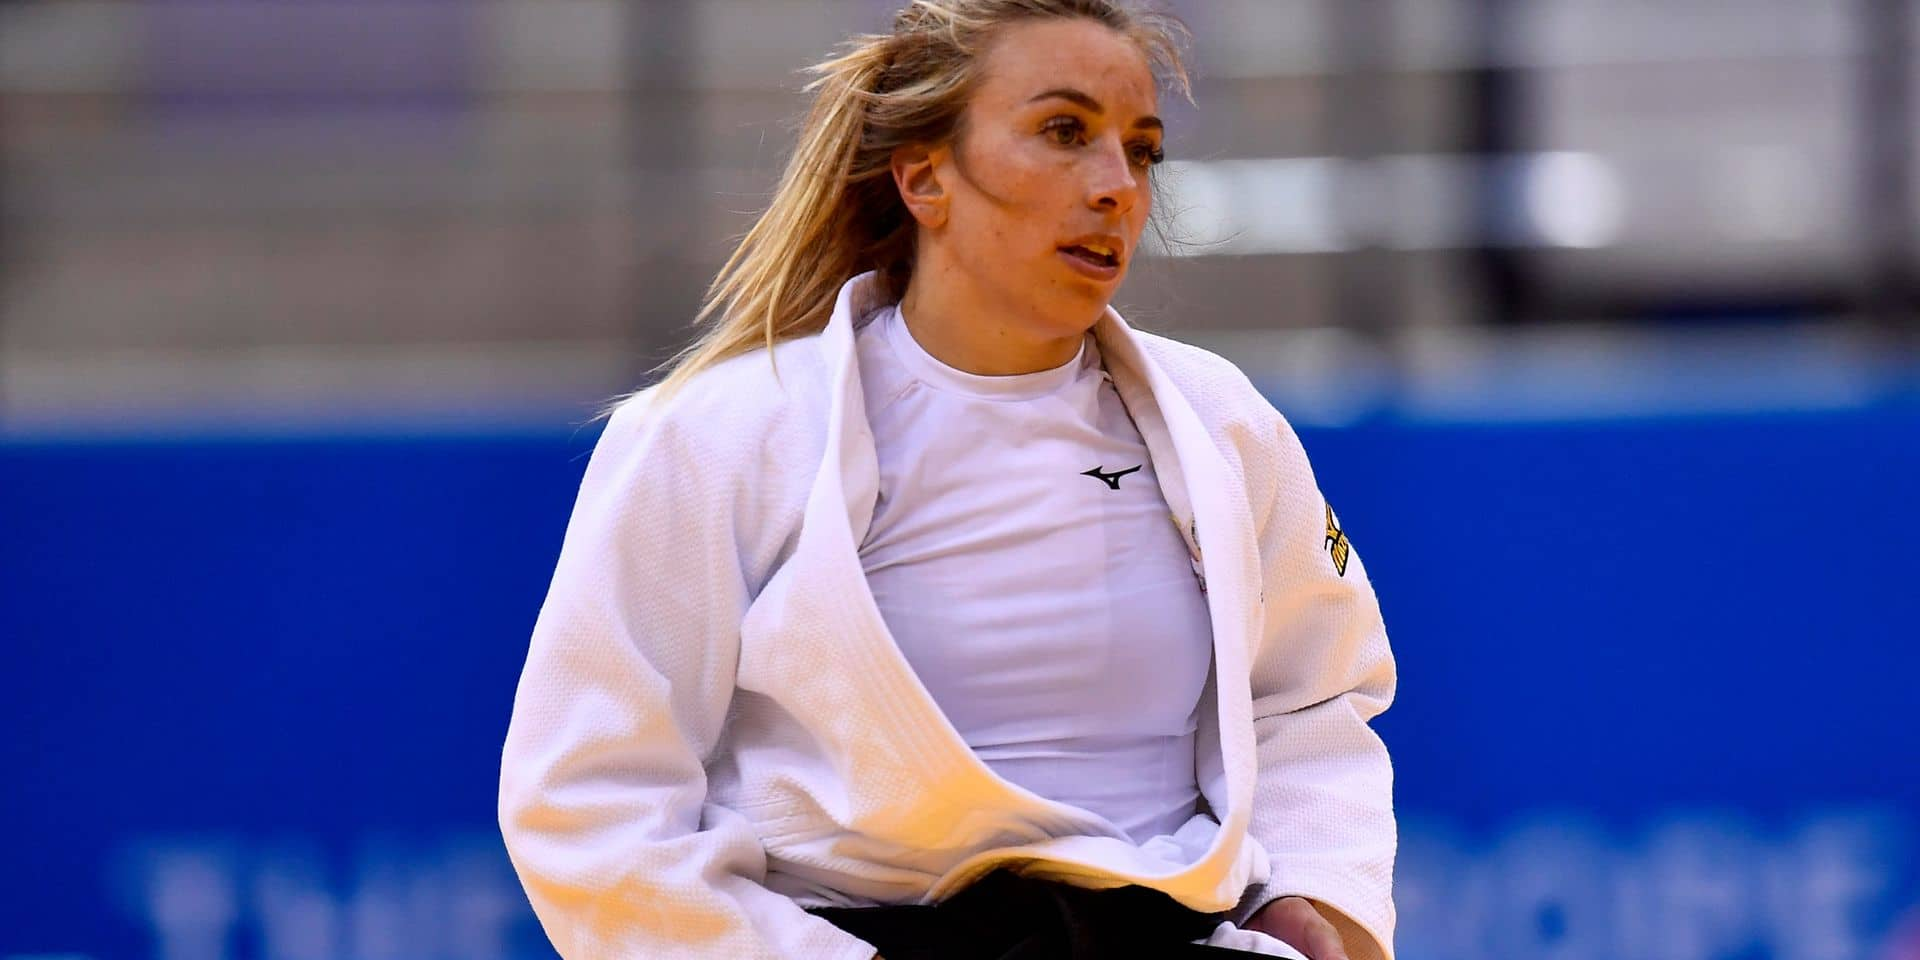 Belgian judoka Charline Van Snick pictured in action during the women's -52kg judo competition at the European Games in Minsk, Belarus, Saturday 22 June 2019. The second edition of the 'European Games' takes place from 21 to 30 June in Minsk, Belarus. Belgium will present 51 athletes from 11 sports. BELGA PHOTO DIRK WAEM